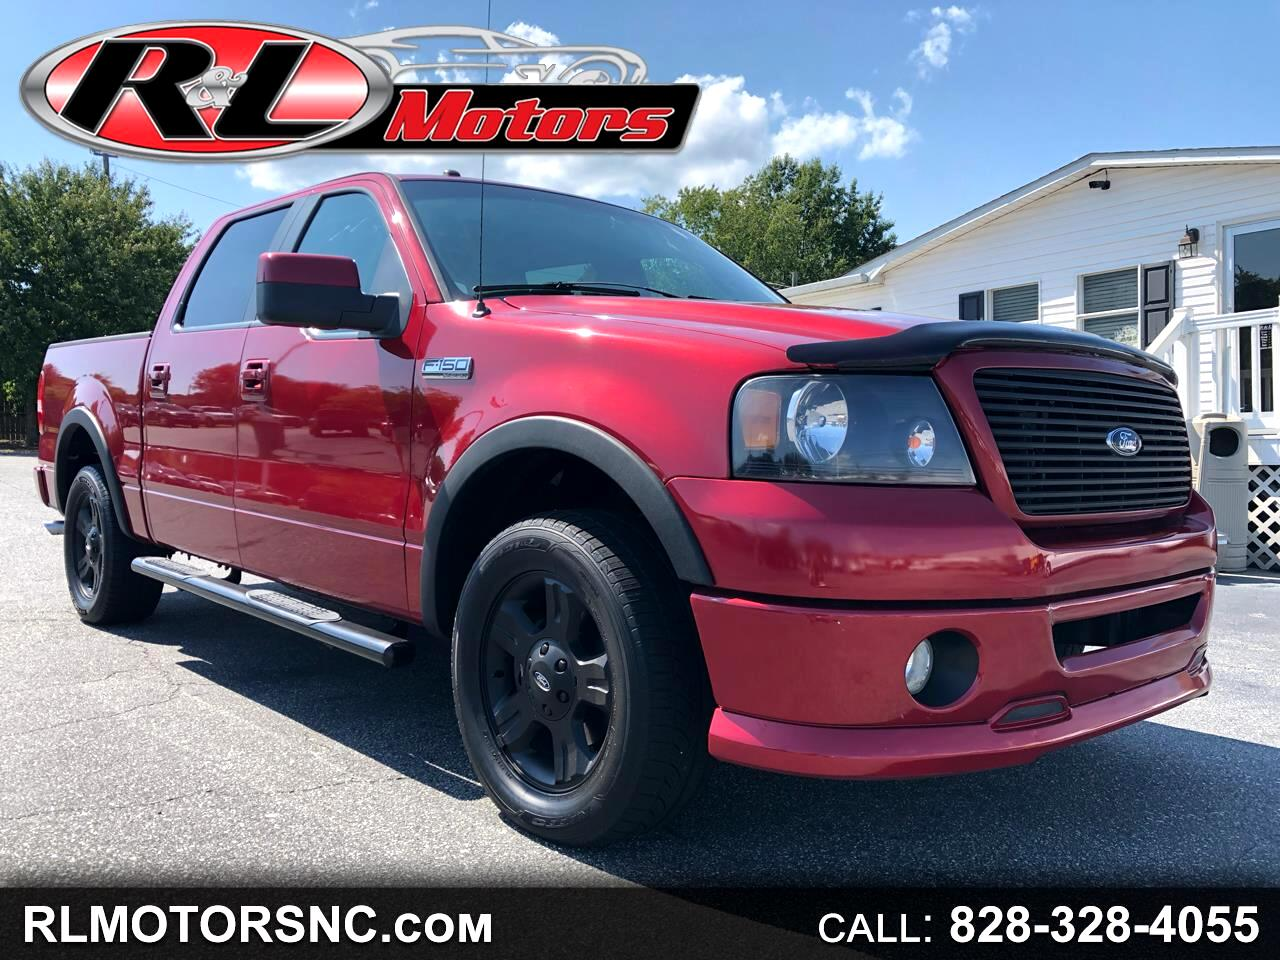 2007 Ford F-150 FX4 SuperCrew Short Box